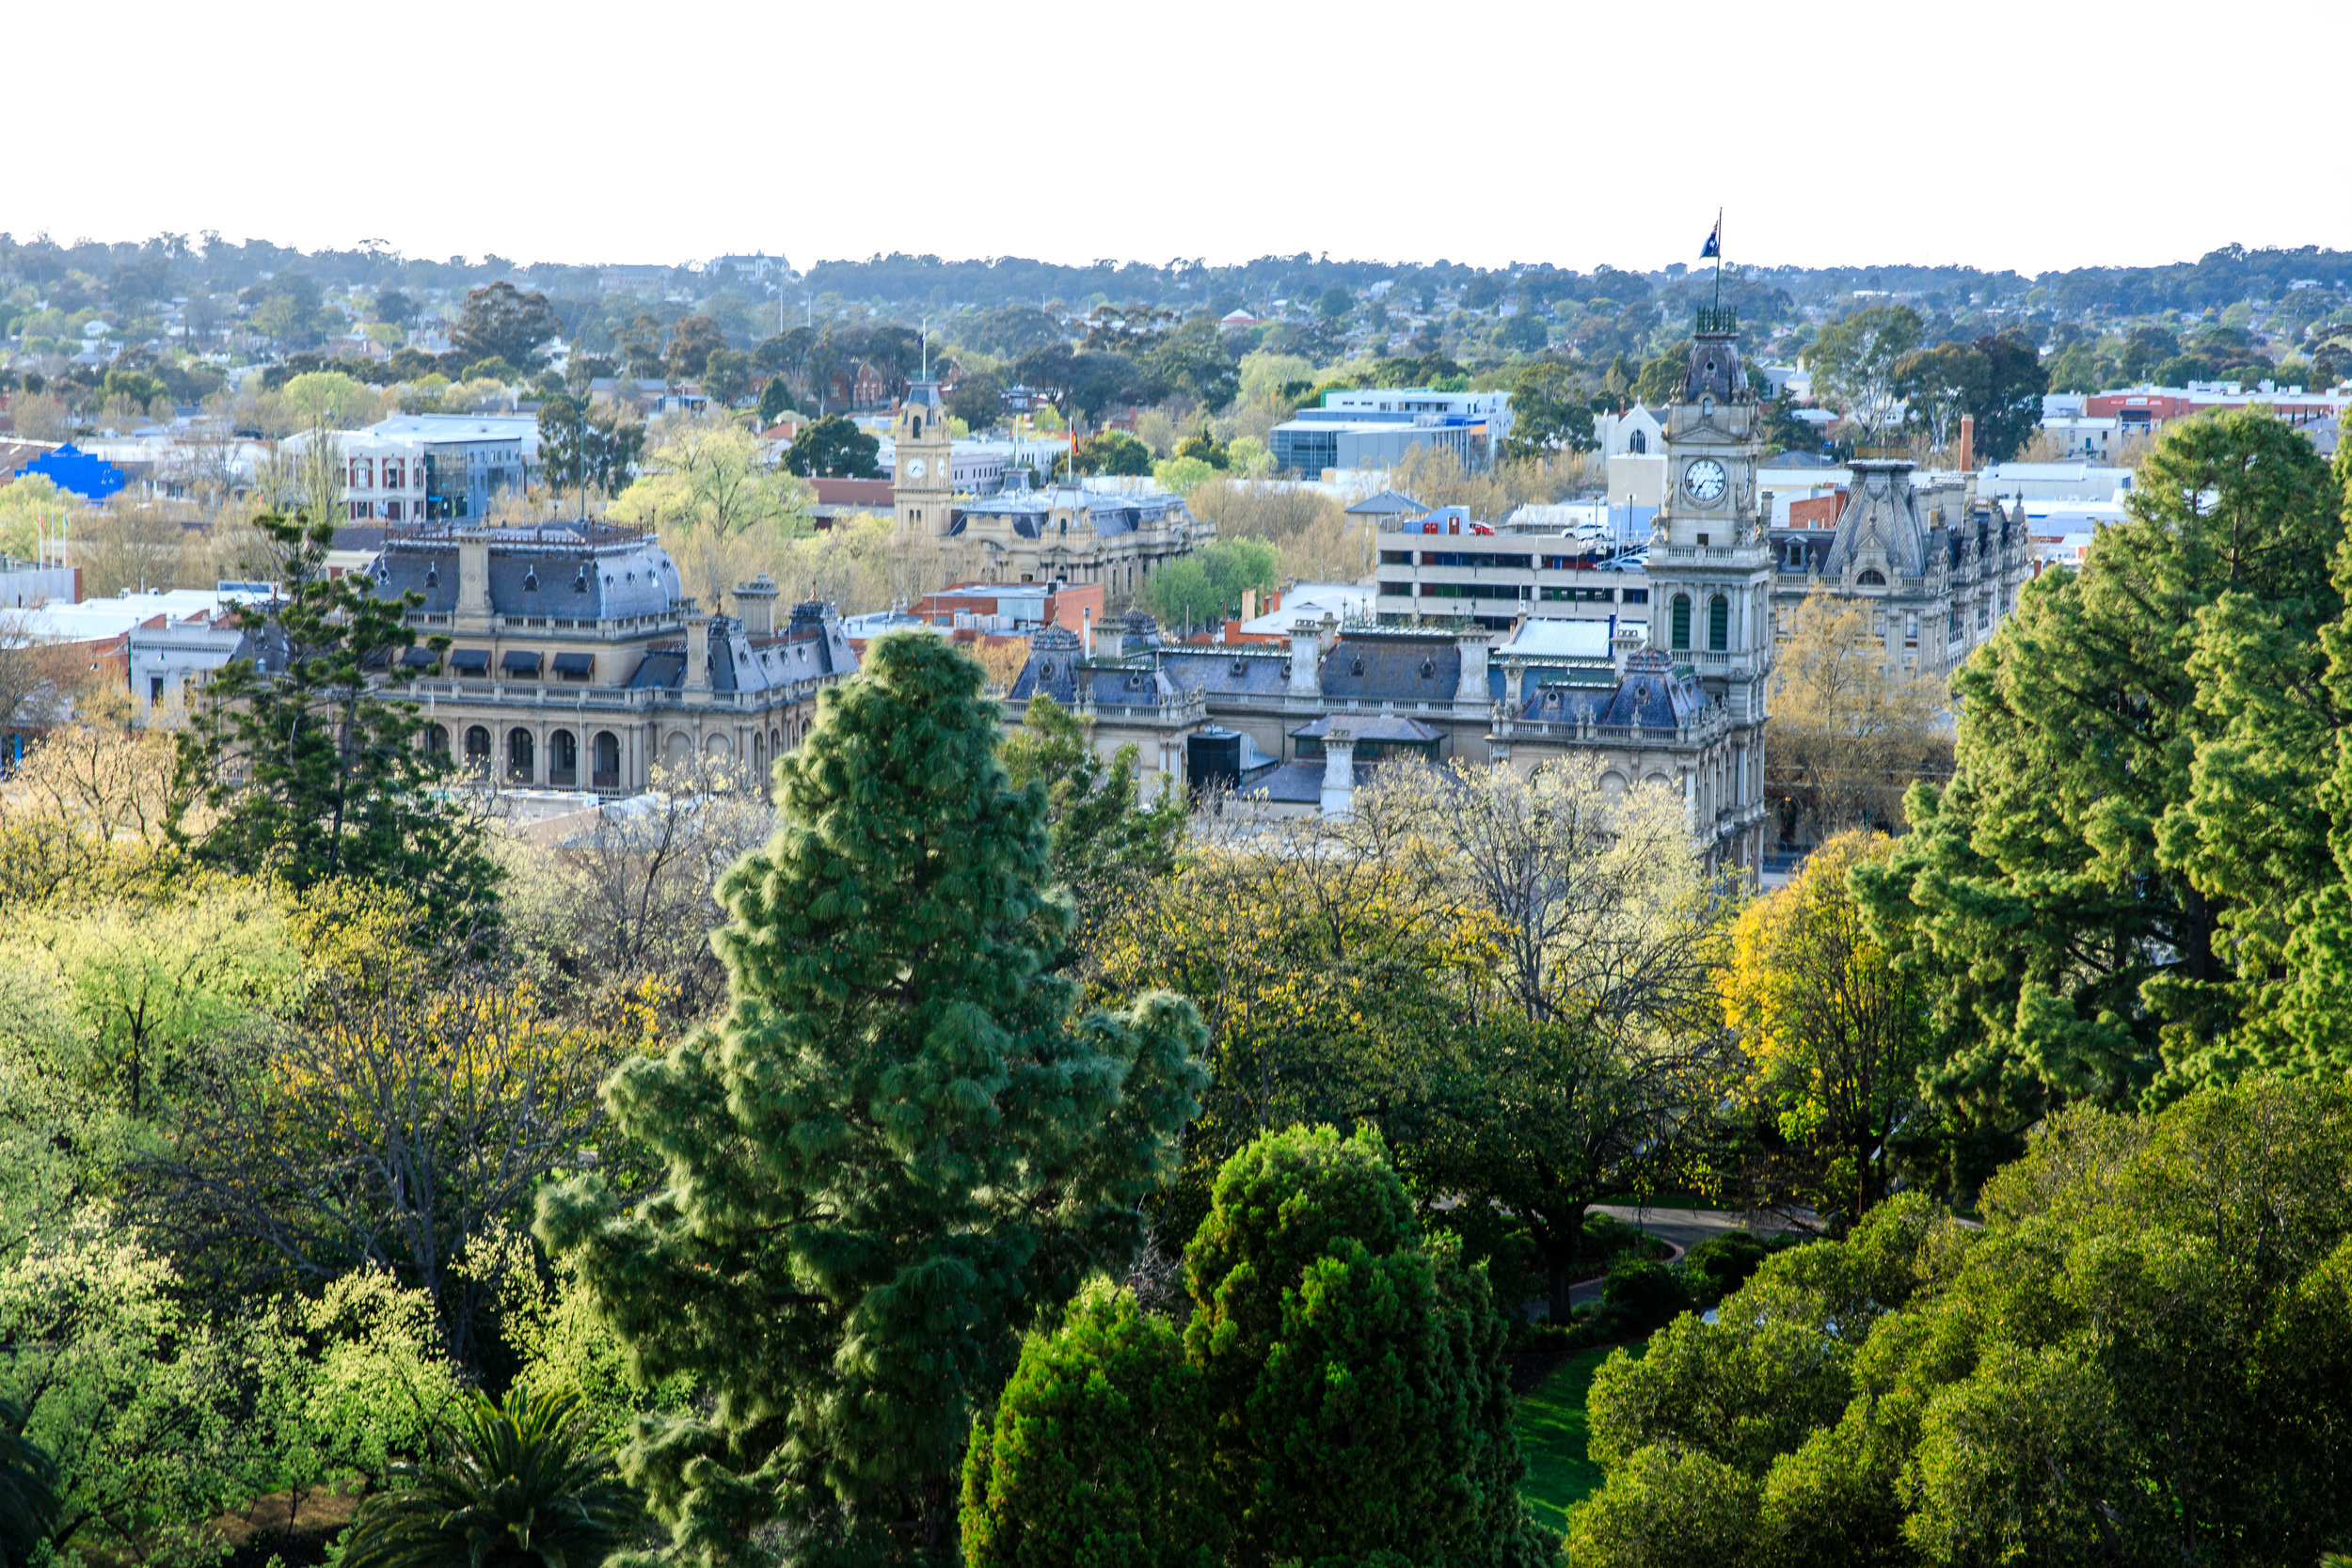 The Bendigo Law Courts, Post Office & Town hall with the beautiful Rosalind Park in the foreground. Photo Credit:  Chris Jack Photography